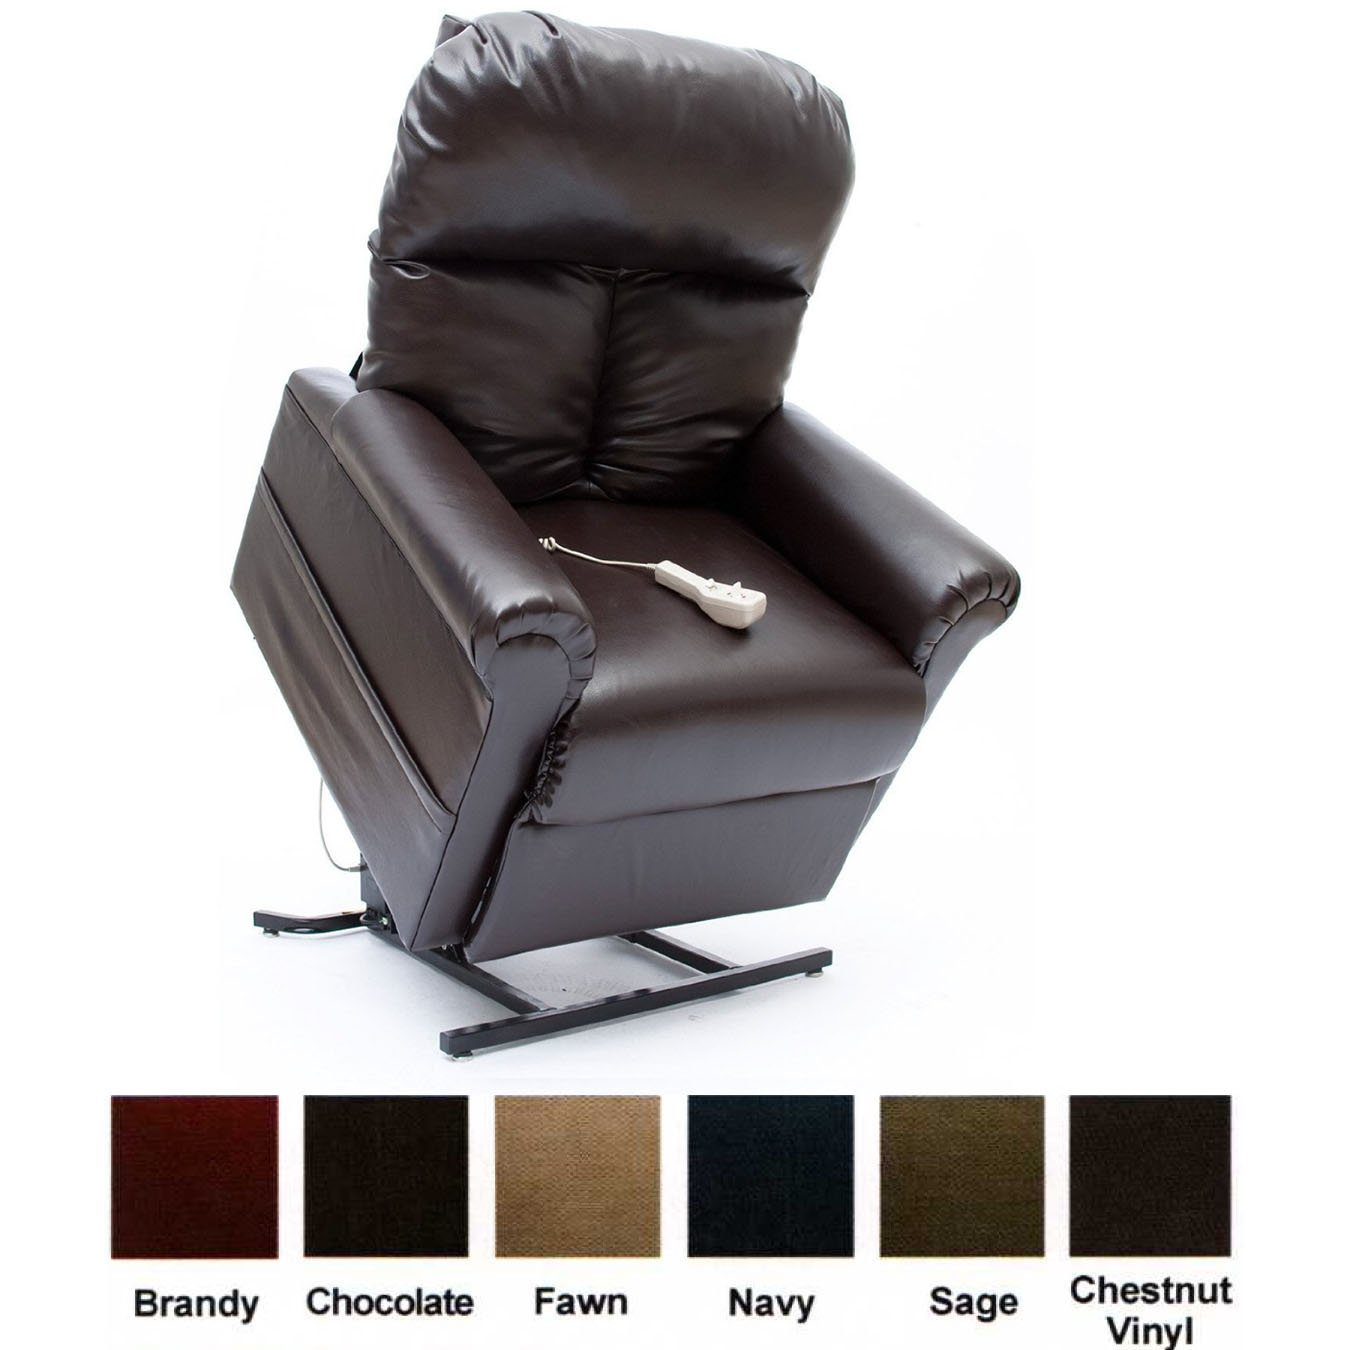 amazoncom mega motion power easy comfort lift chair lifting recliner lc100 infinite position rising electric chaise lounger fawn tan color fabric